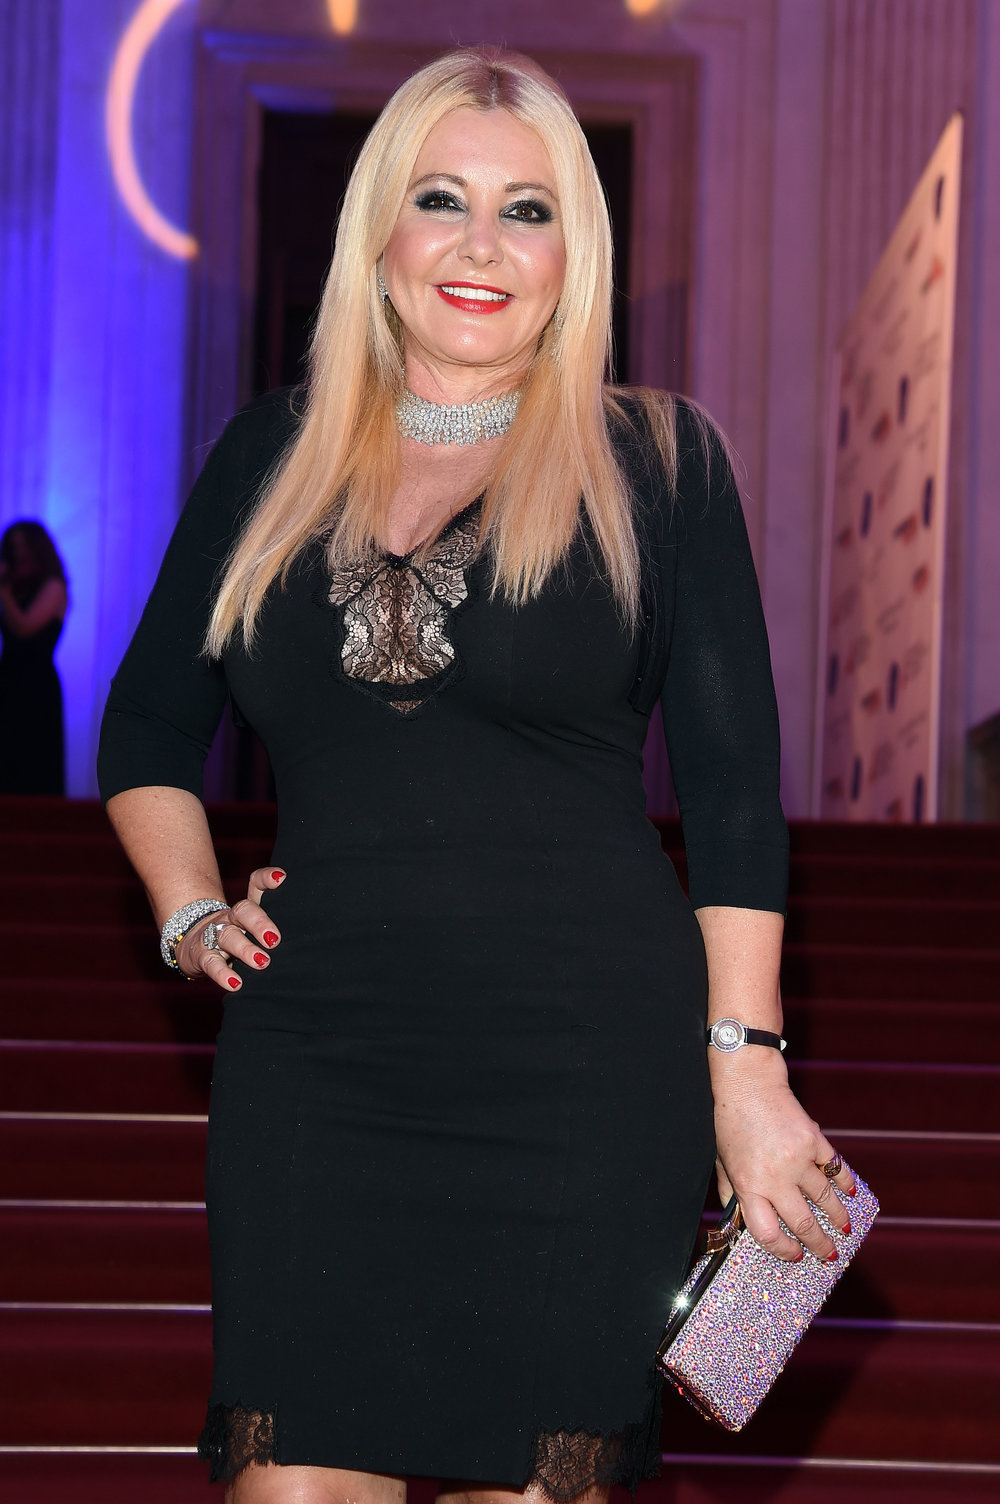 Monika Bacardi at Gala dinner hosted by Foundation Prince Albert II in Milano 2015